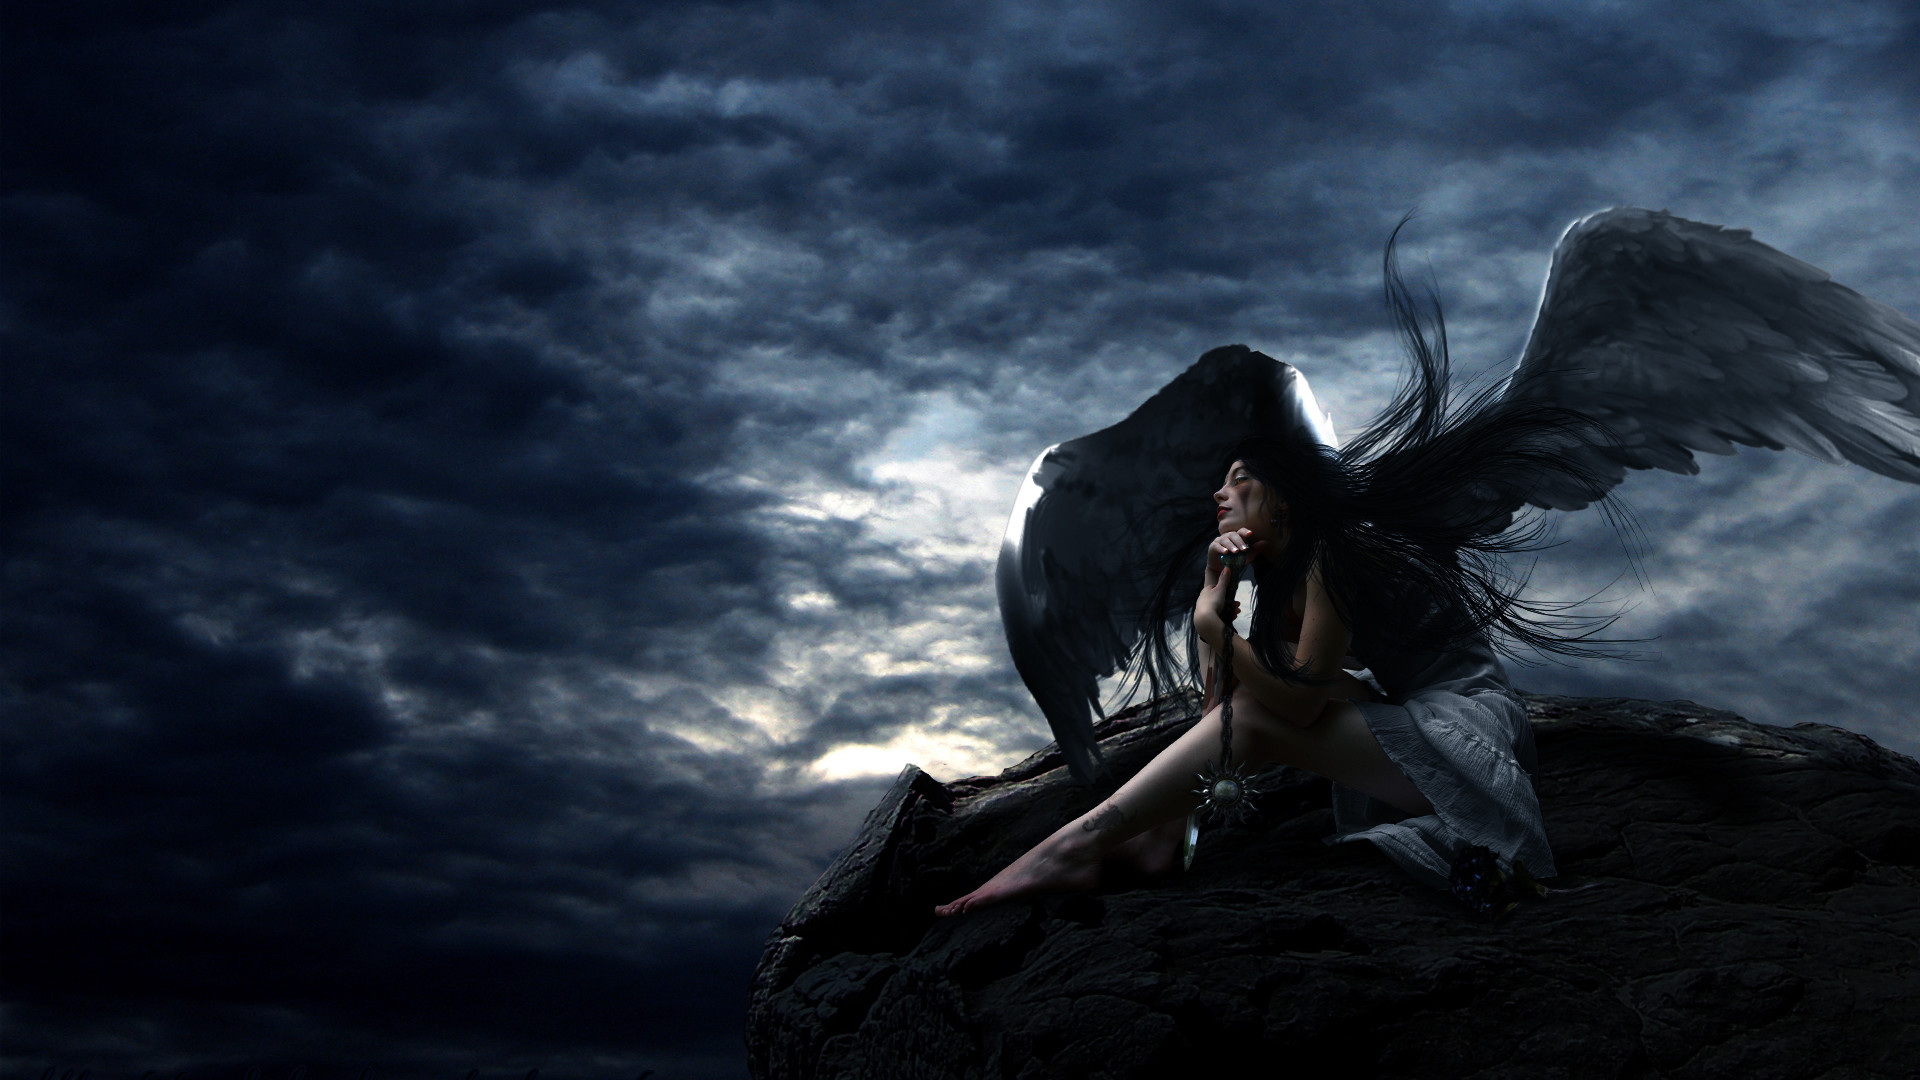 1920x1080 Awesome Black Angel Photo | Black Angel Wallpapers